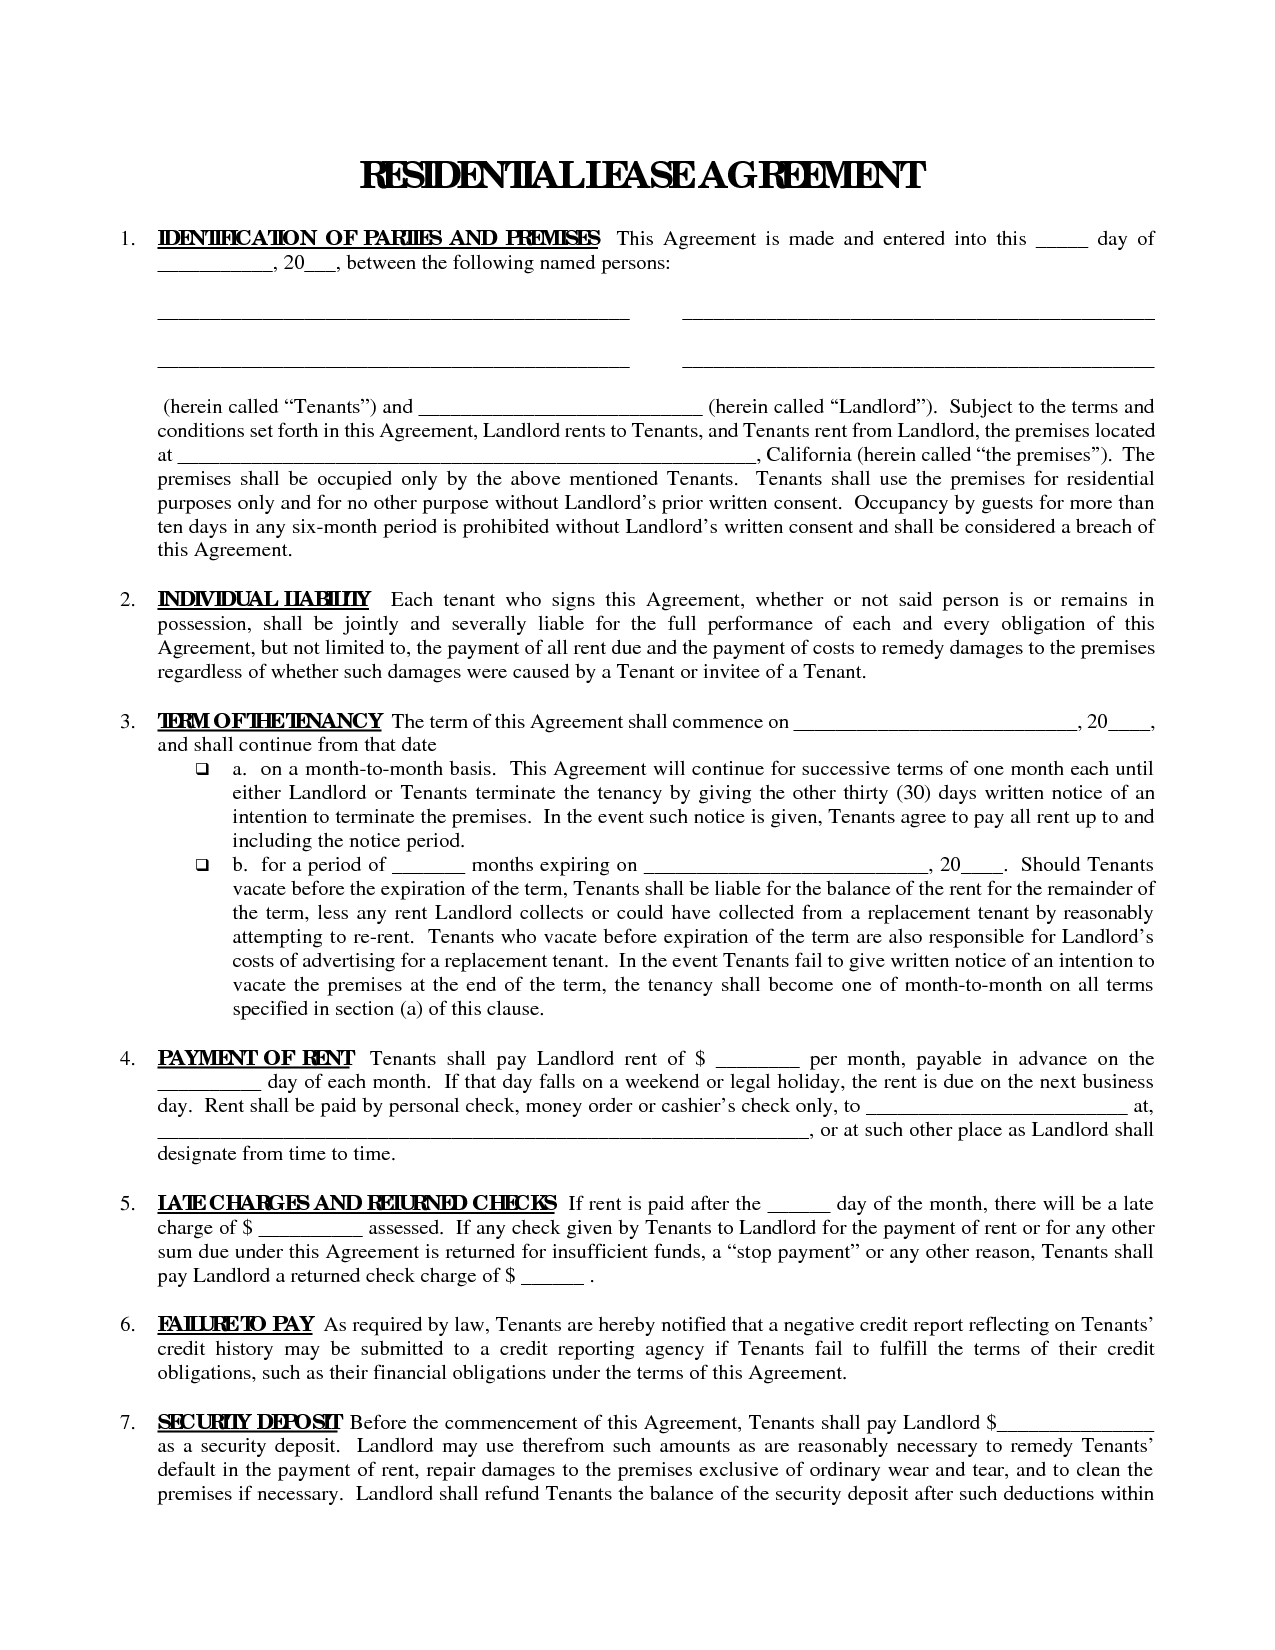 Printable Residential Free House Lease Agreement | Residential Lease  Agreement: Real Estate Legal Form  Lease Agreement Printable